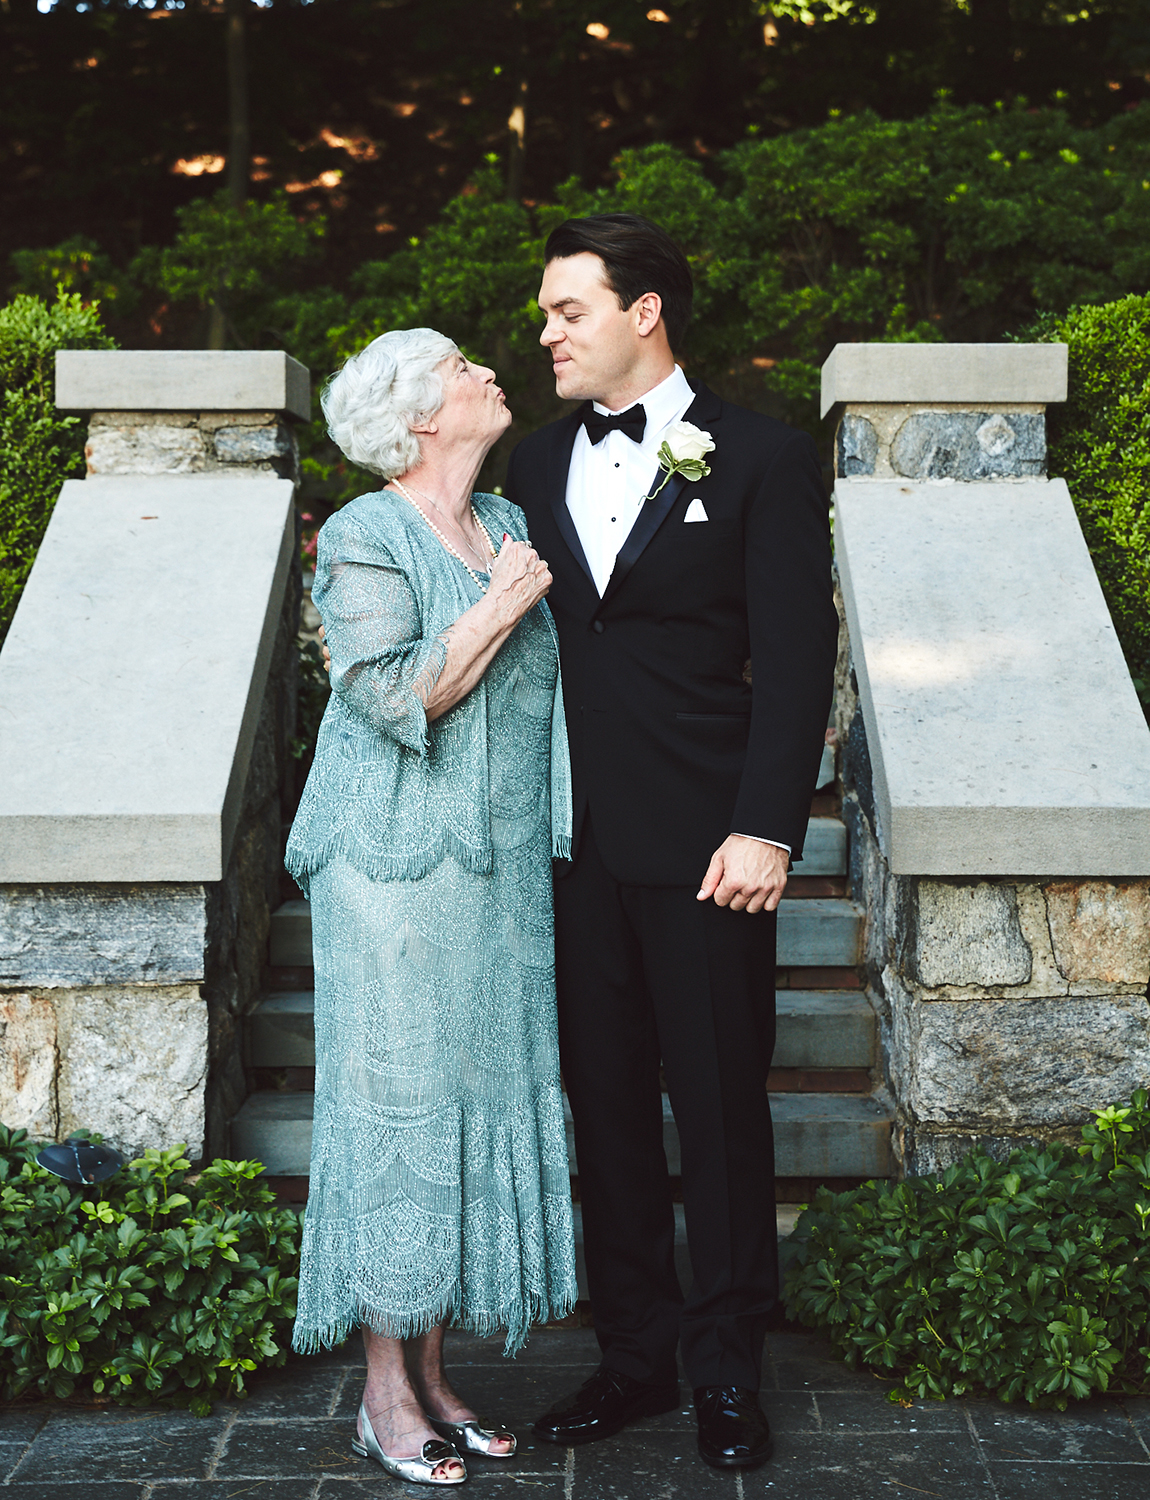 170804_TappanHillMansionWeddingPhotography_NYWeddingPhotographerBy_BriJohnsonWeddings_0074.jpg